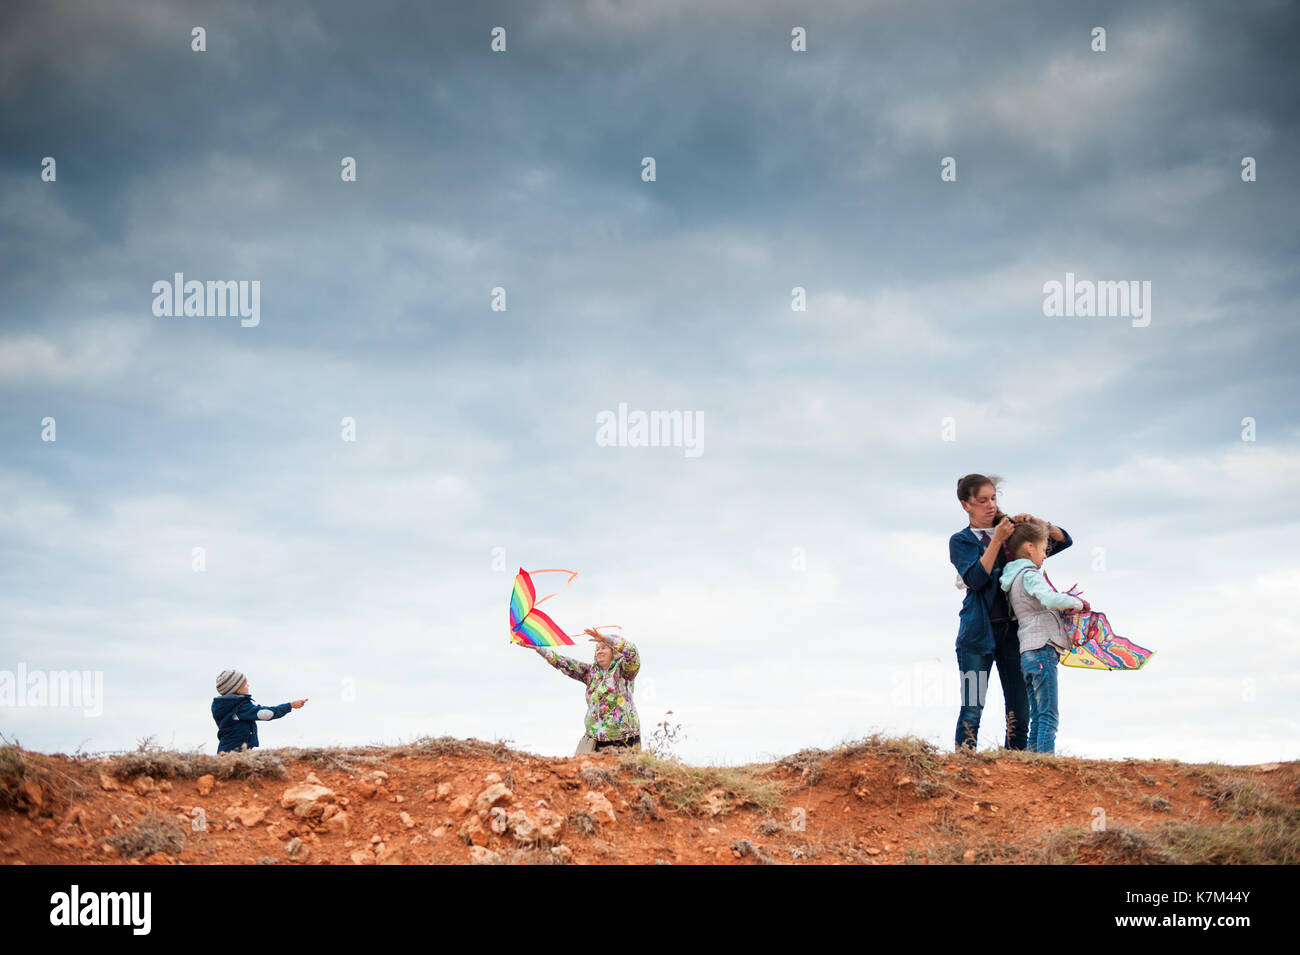 happy family of three generations playing with kites outdoor - Stock Image